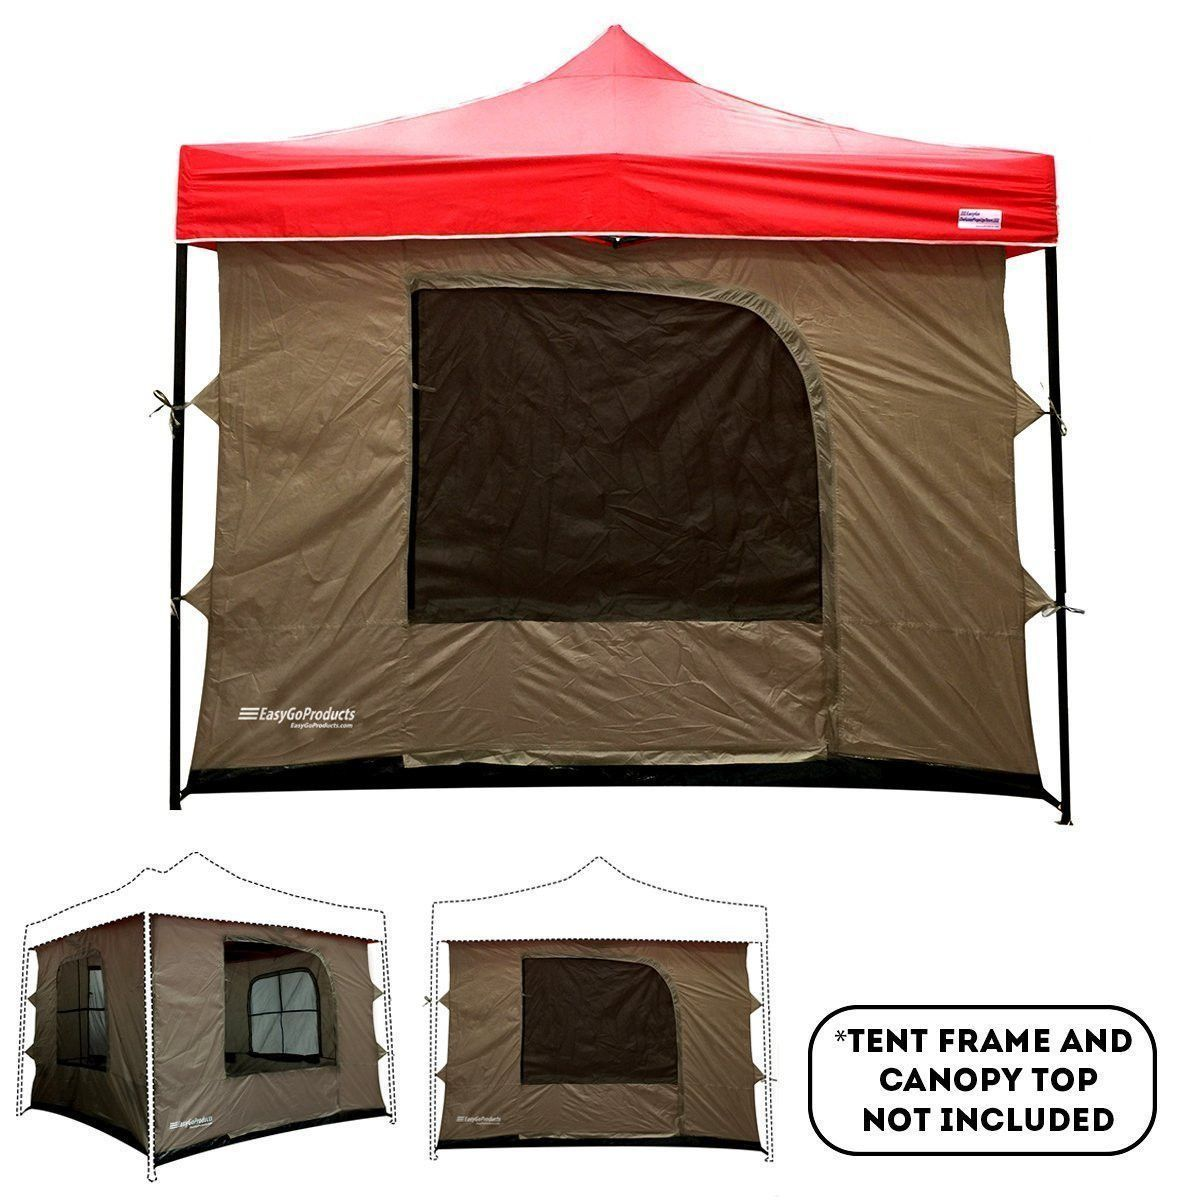 This Product Has No Title On Amazon 757166 Pop Up Camping Tent Best Tents For Camping Family Tent Camping